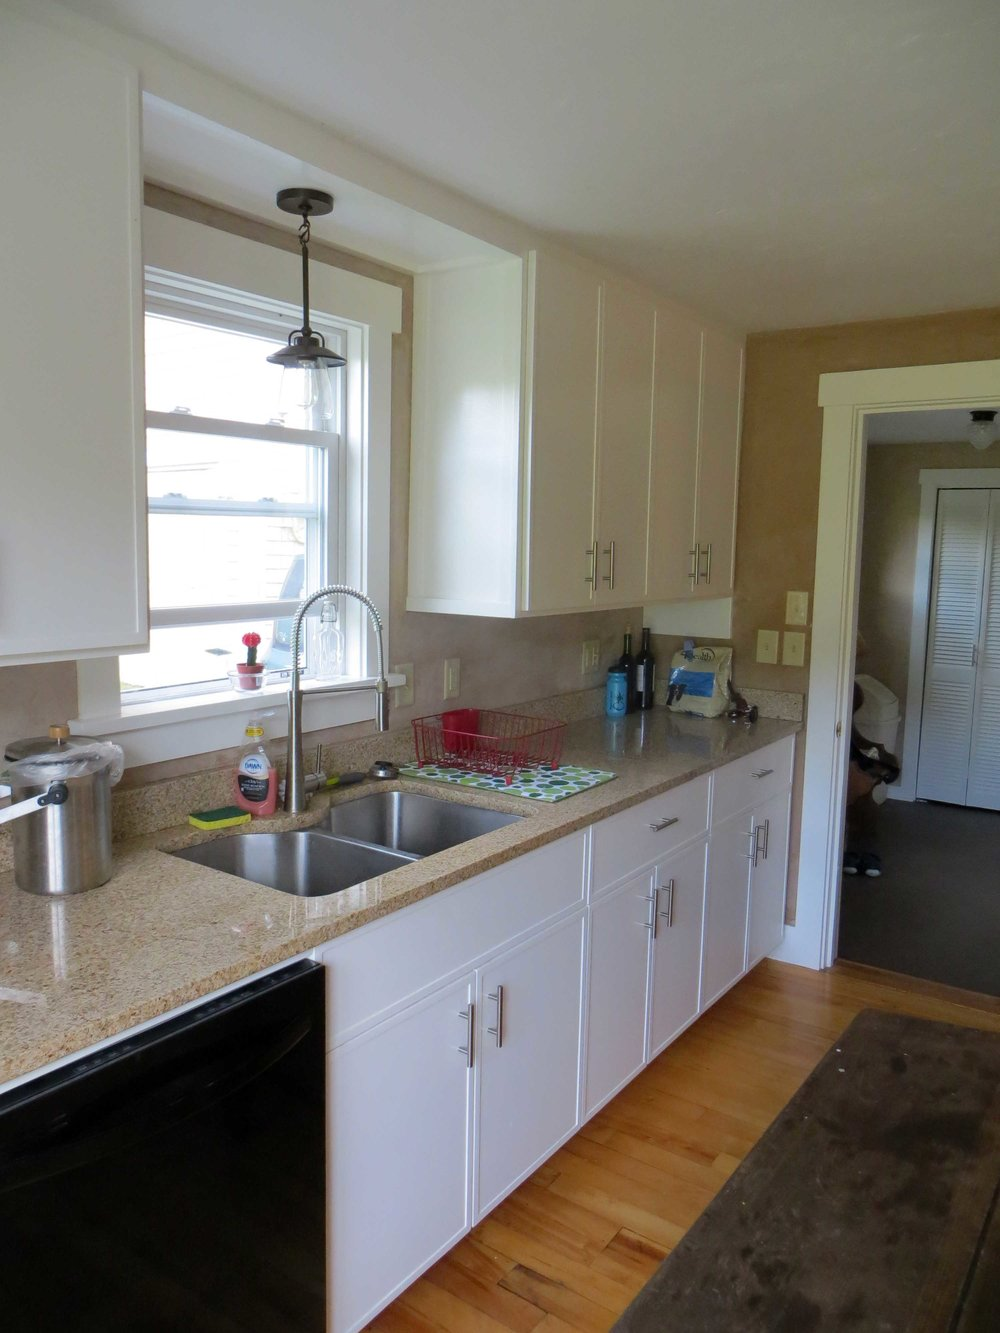 Overton_lo res_Kitchen sink area.jpg